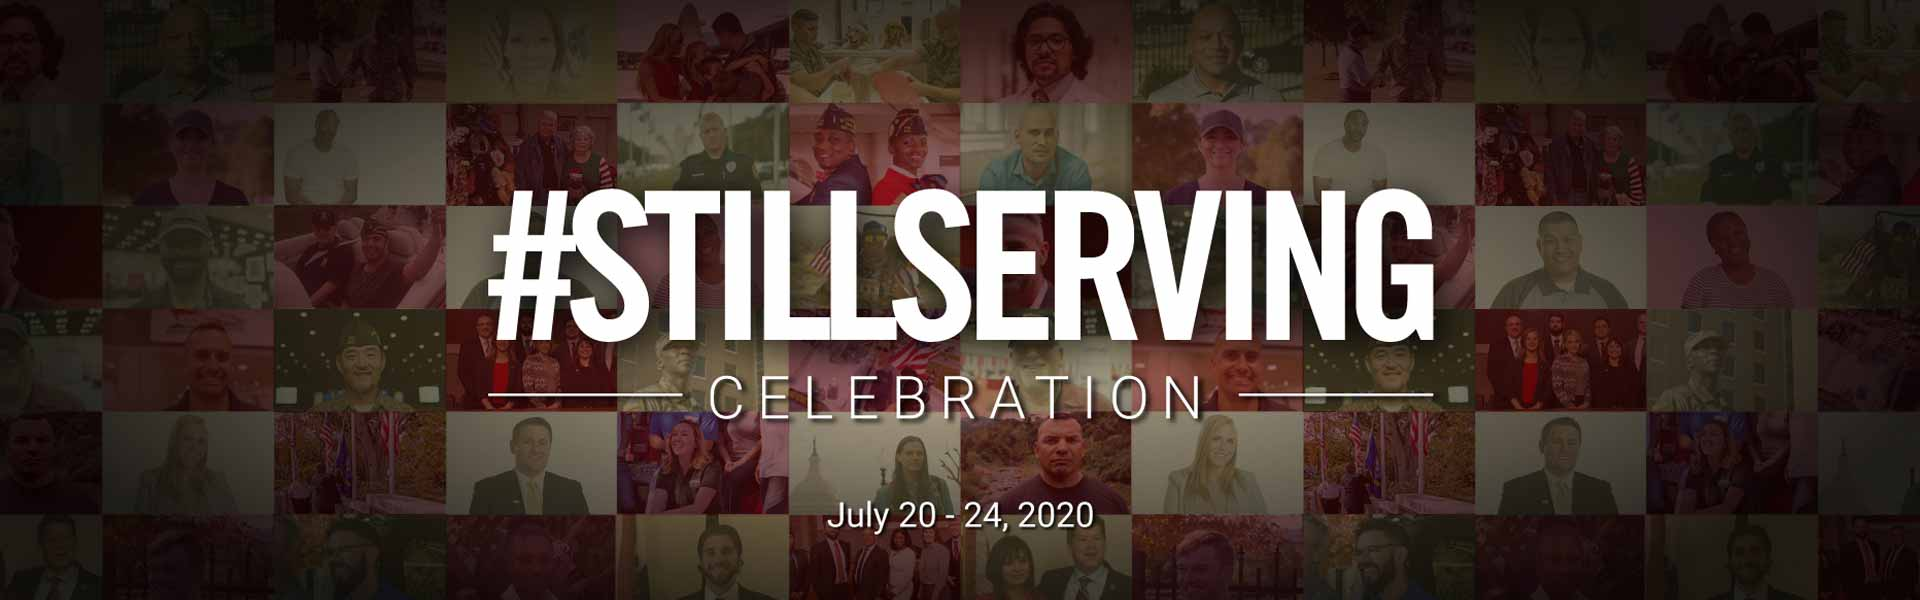 The VFW's #StillServing Celebration, July 20-24, 2020, honors the many ways America's veterans continue to serve their community long after their military service ends